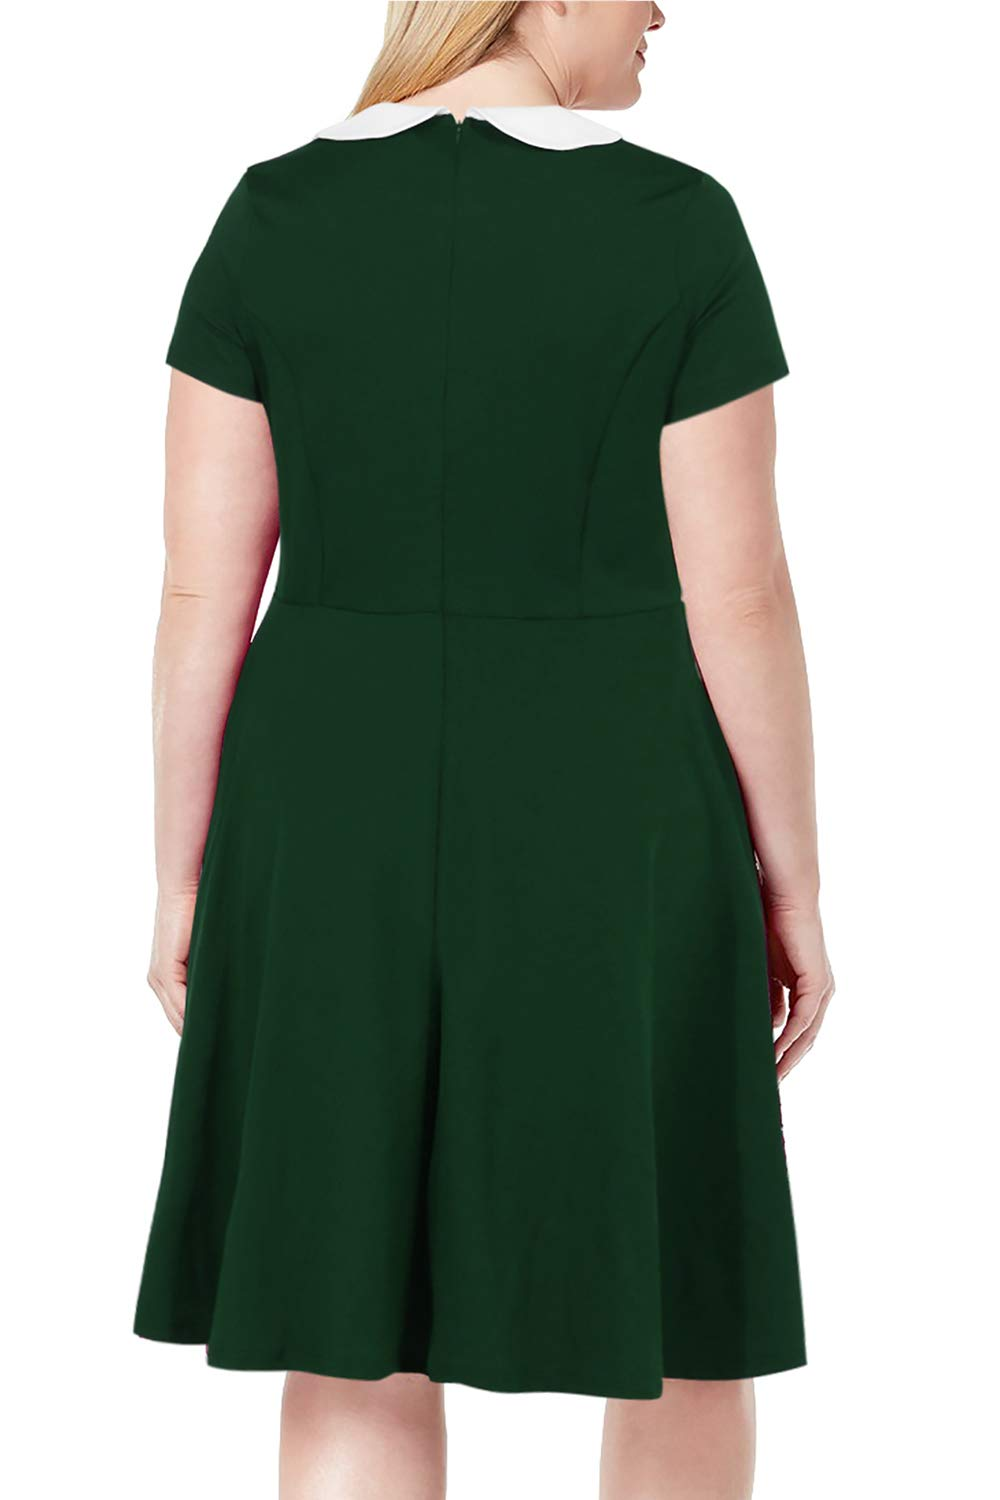 Nemidor Women\'s Peter Pan Collar Fit and Flare Plus Size Skater Party Dress  (Green, 18W)